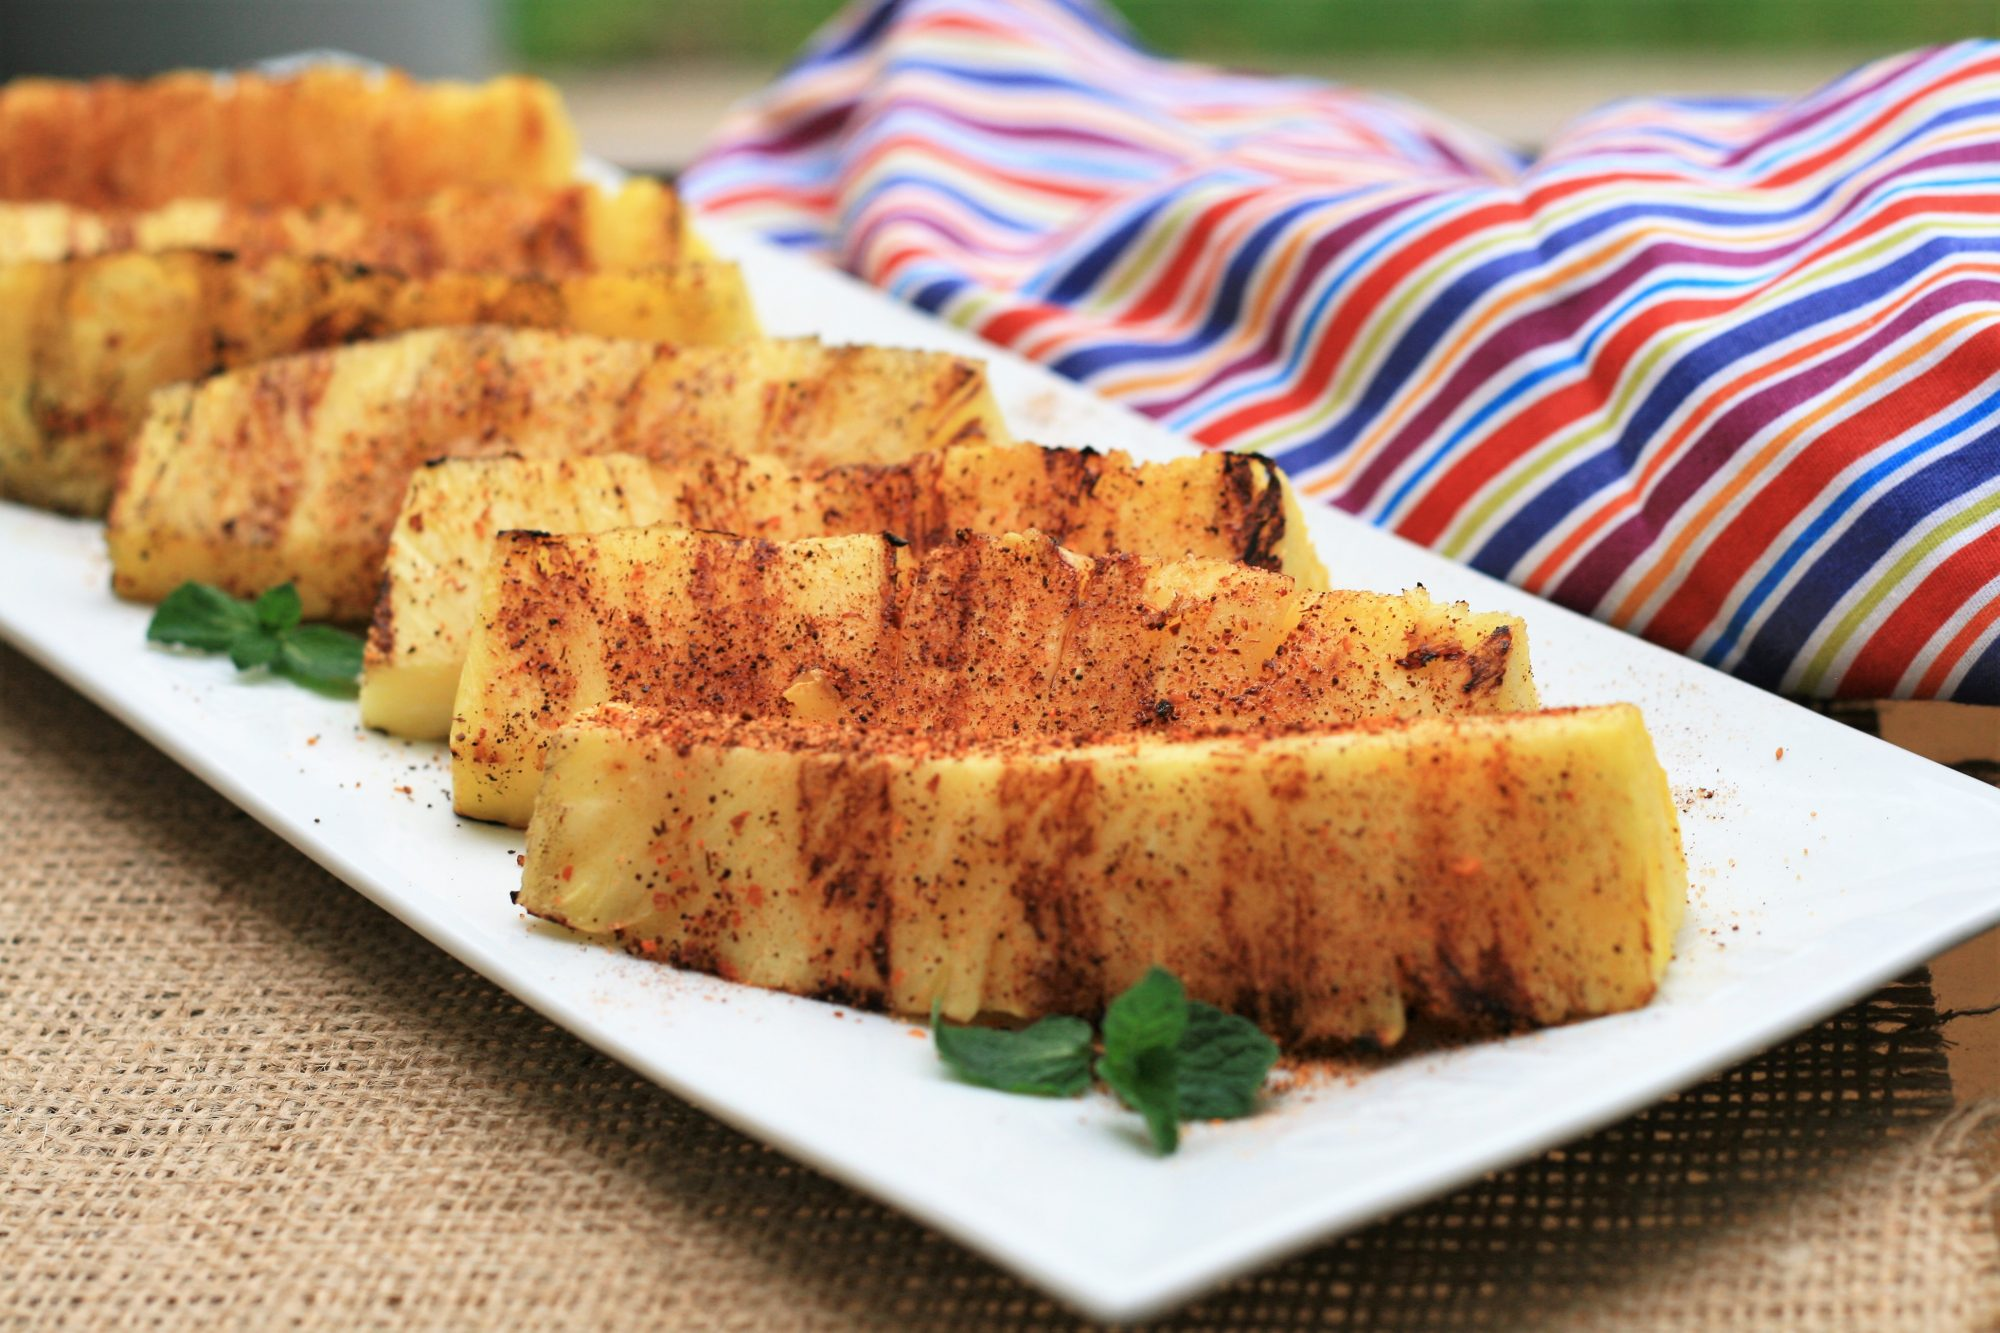 wedges of grilled pineapple on a white platter with grill marks and sprinkle of tajin seasoning